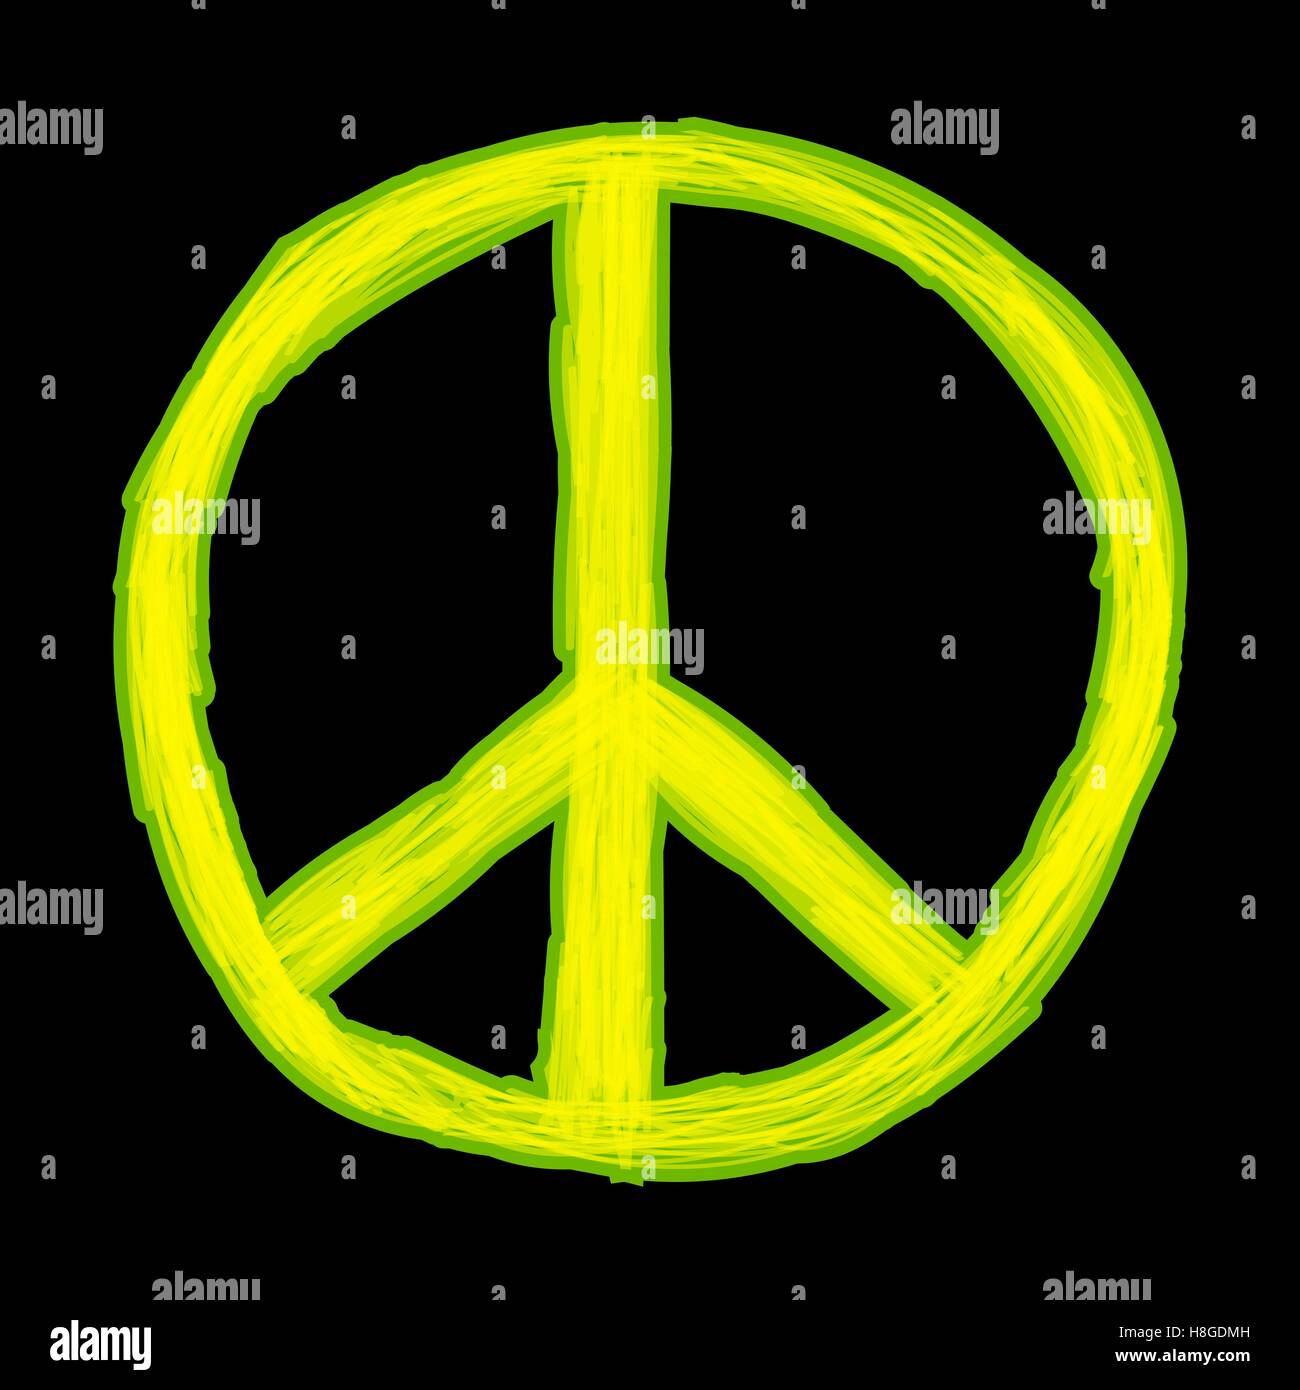 Peace sign. Hippie symbol of peace - Stock Image